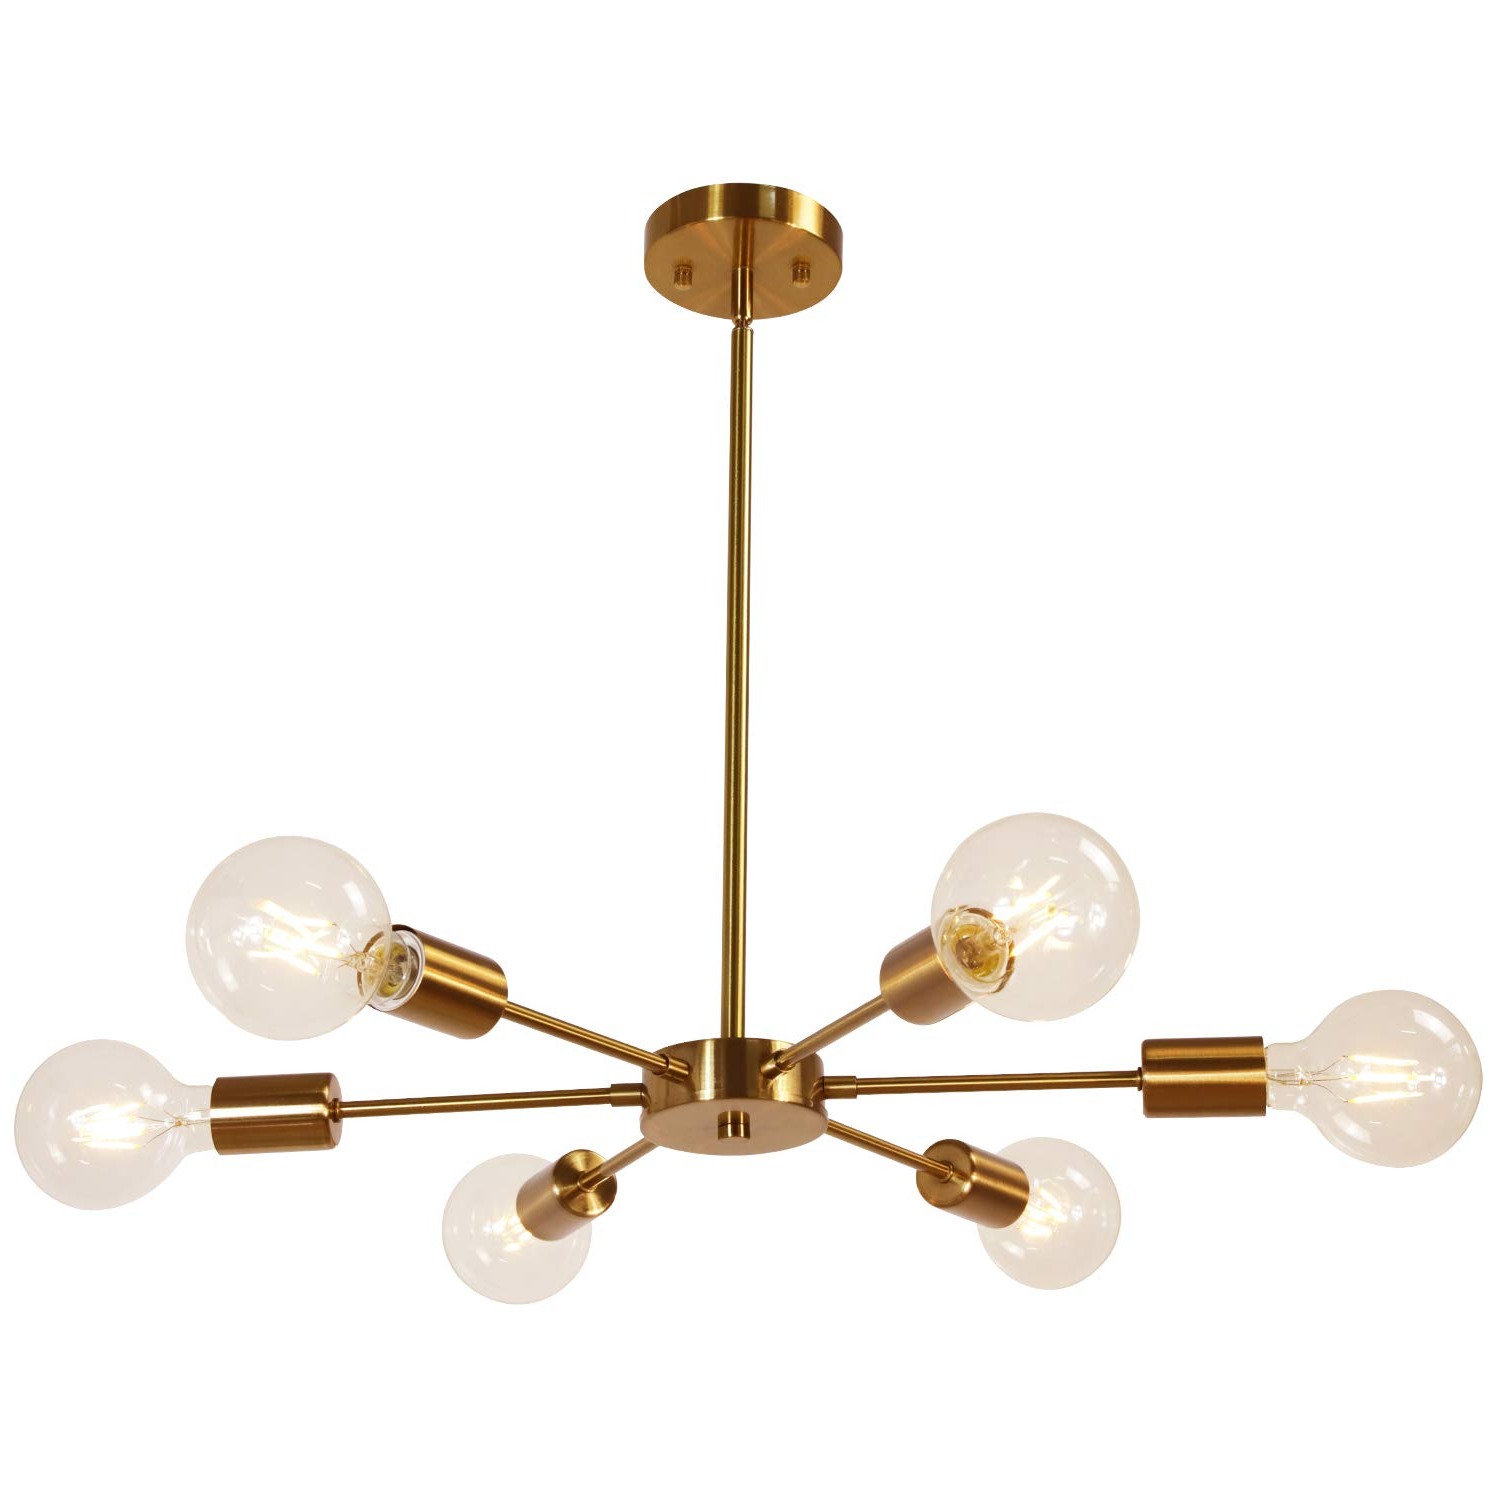 Bautista 6-Light Sputnik Chandeliers throughout Most Popular Melucee Modern Sputnik Chandelier 6 Lights Brass Chandelier Semi Flush  Mount Ceiling Light Mid Century Pendant Light For Bedroom Foyer Dining Room